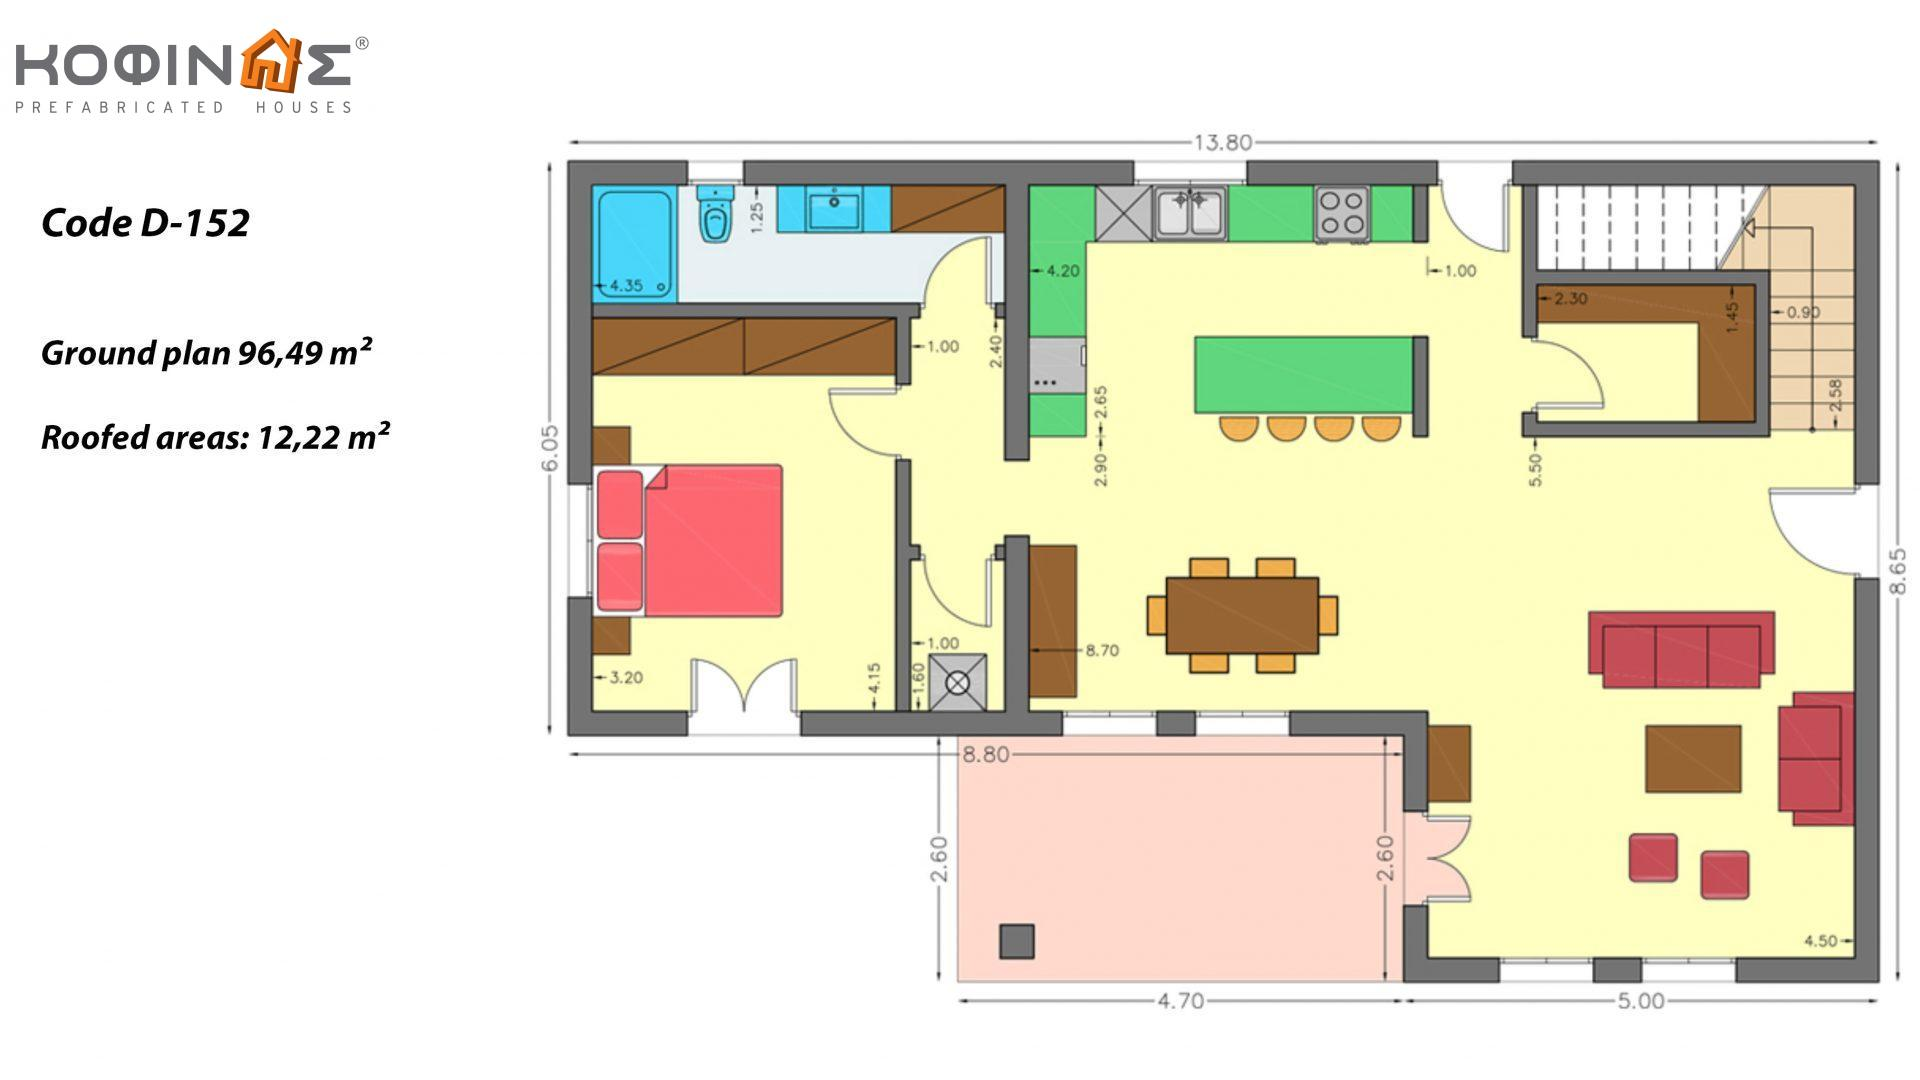 2-story house D-152, total surface of 152,15 m²,roofed areas 12.22 m²,balconies 40.83 m²